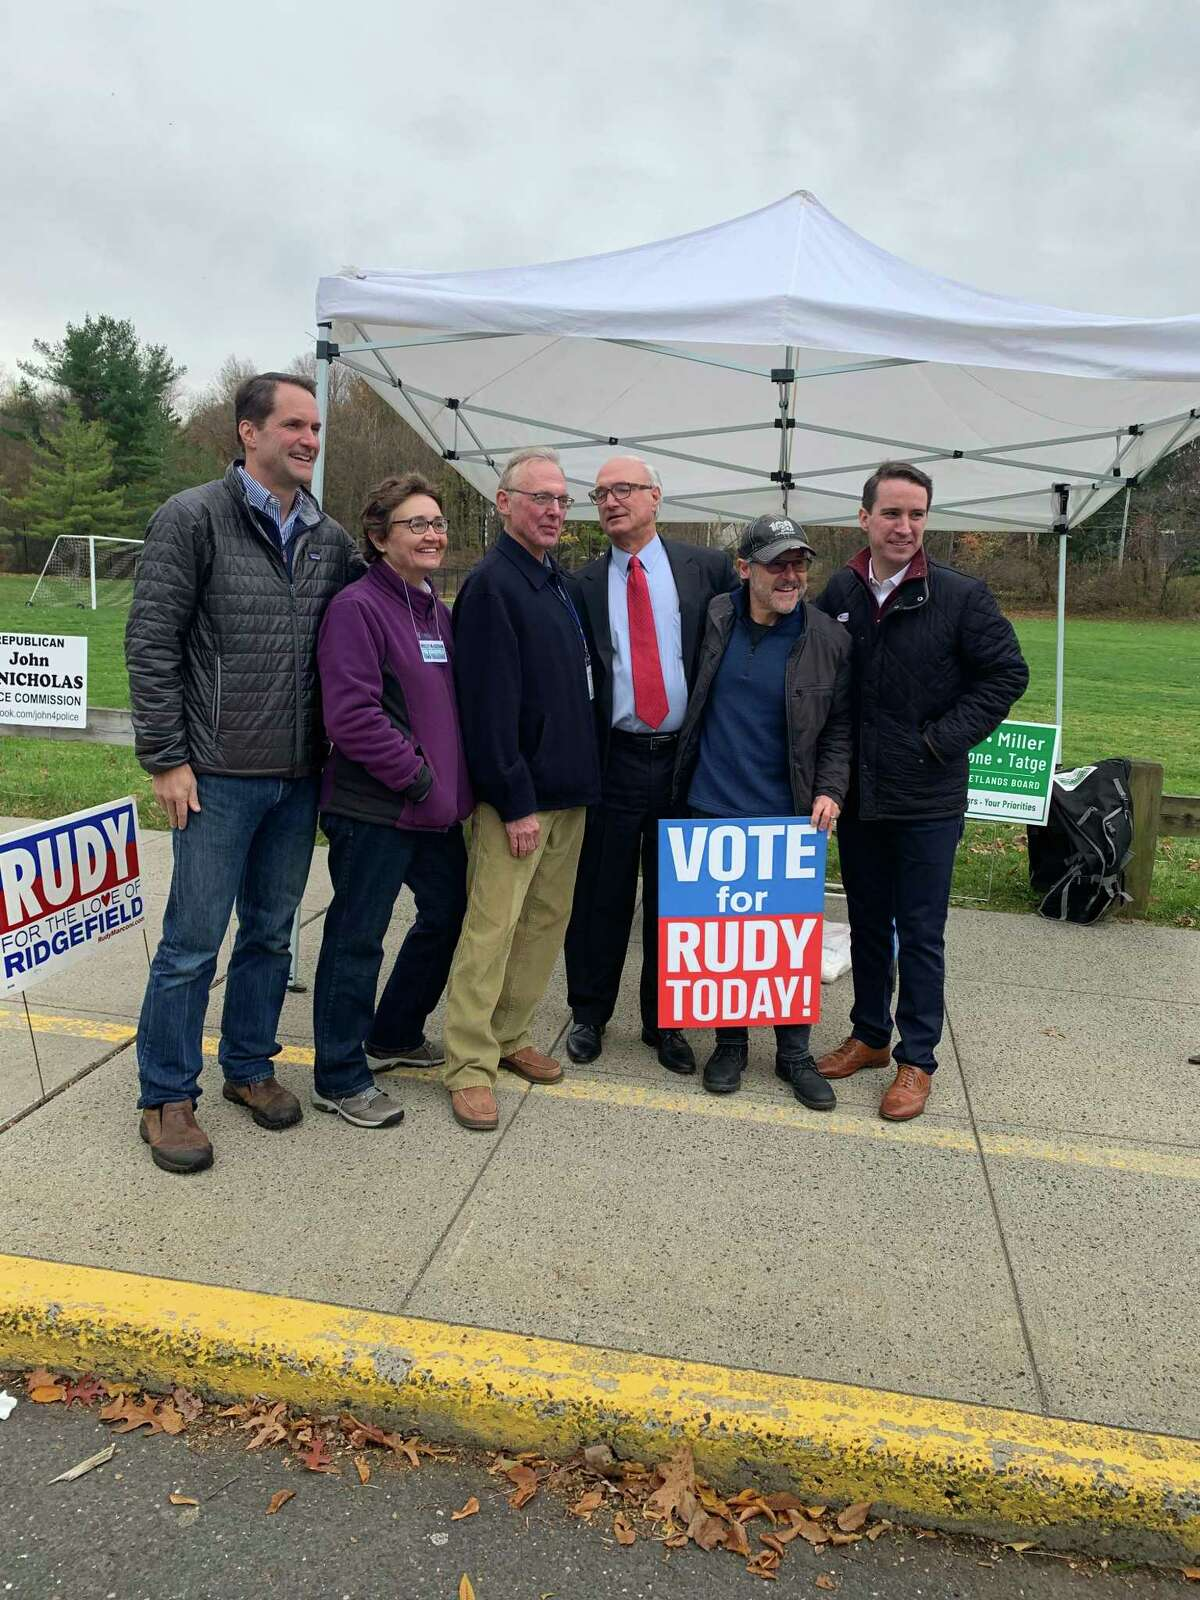 Congressman Jim Himes was in Ridgefield on Tuesday, Nov. 5, 2019, campaigning for First Selectman Rudy Marconi's re-election.